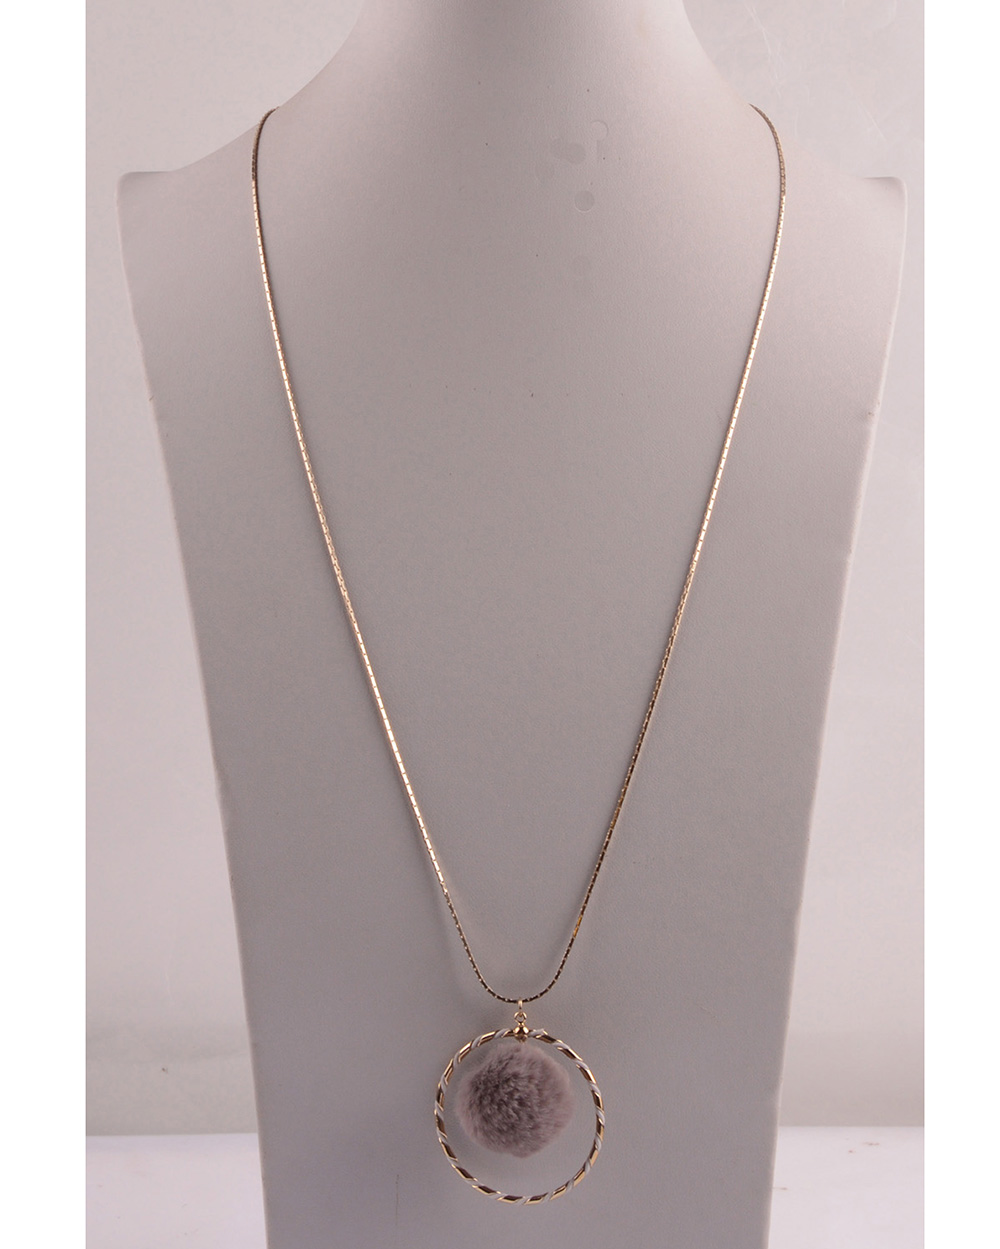 907533 Lady Long Necklace